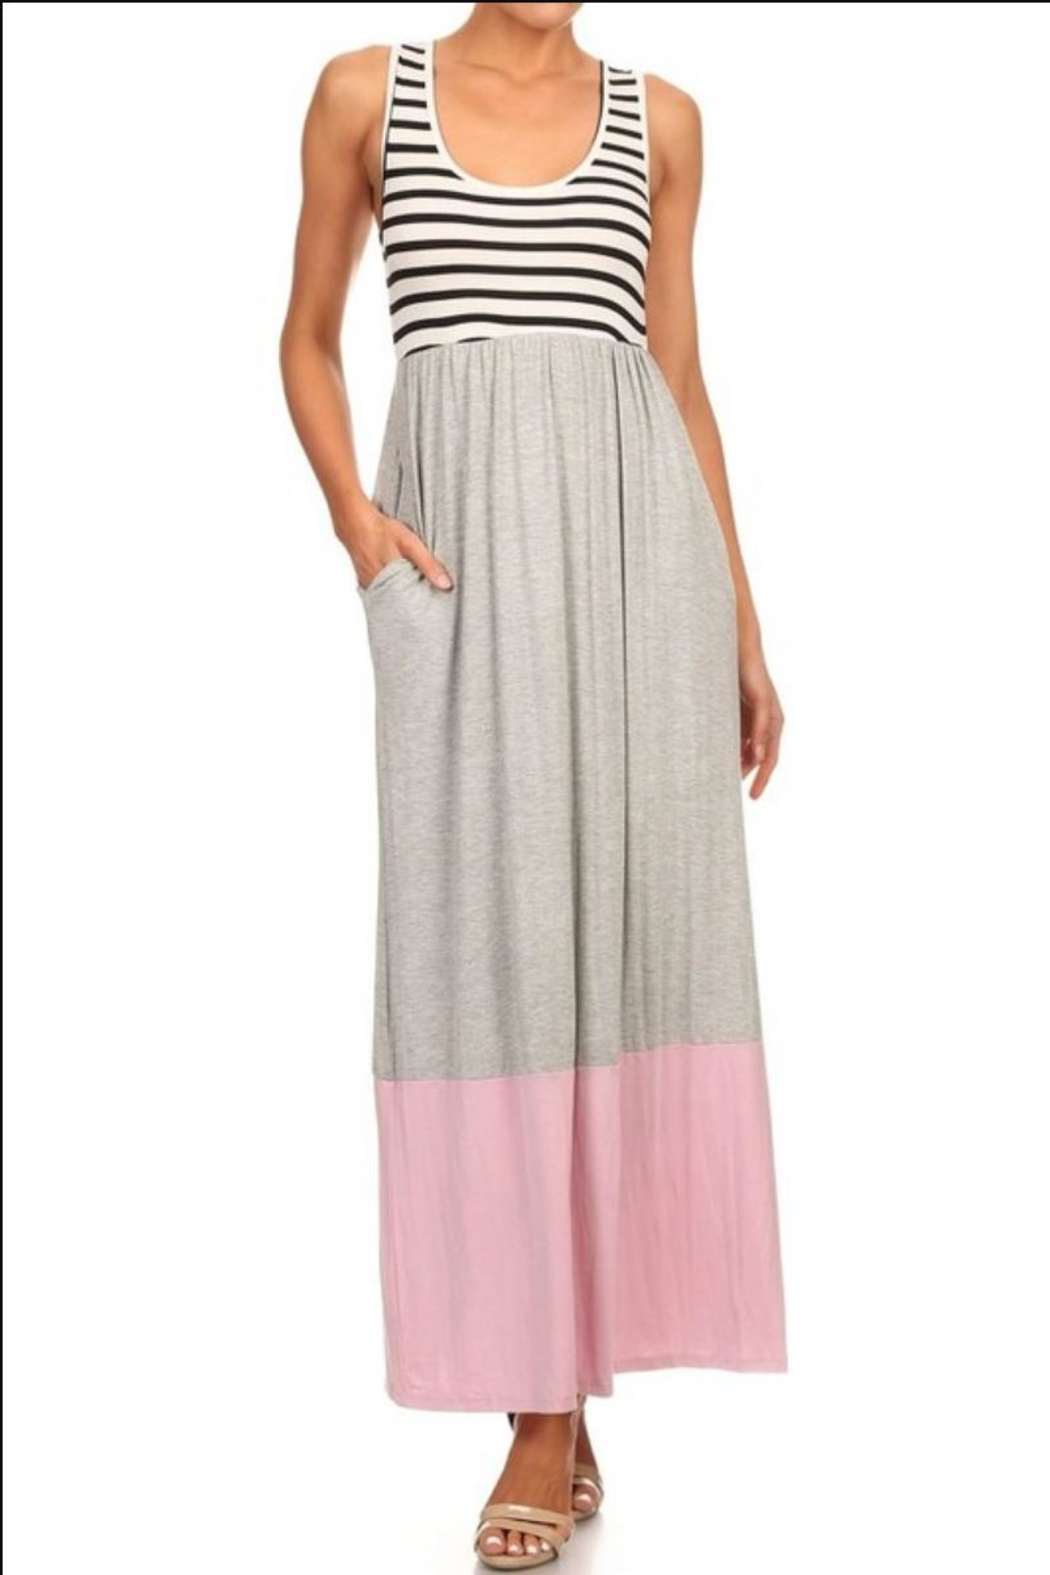 M USA Stripe/colorblock Jersey-Knit Maxidress from North Carolina by ...